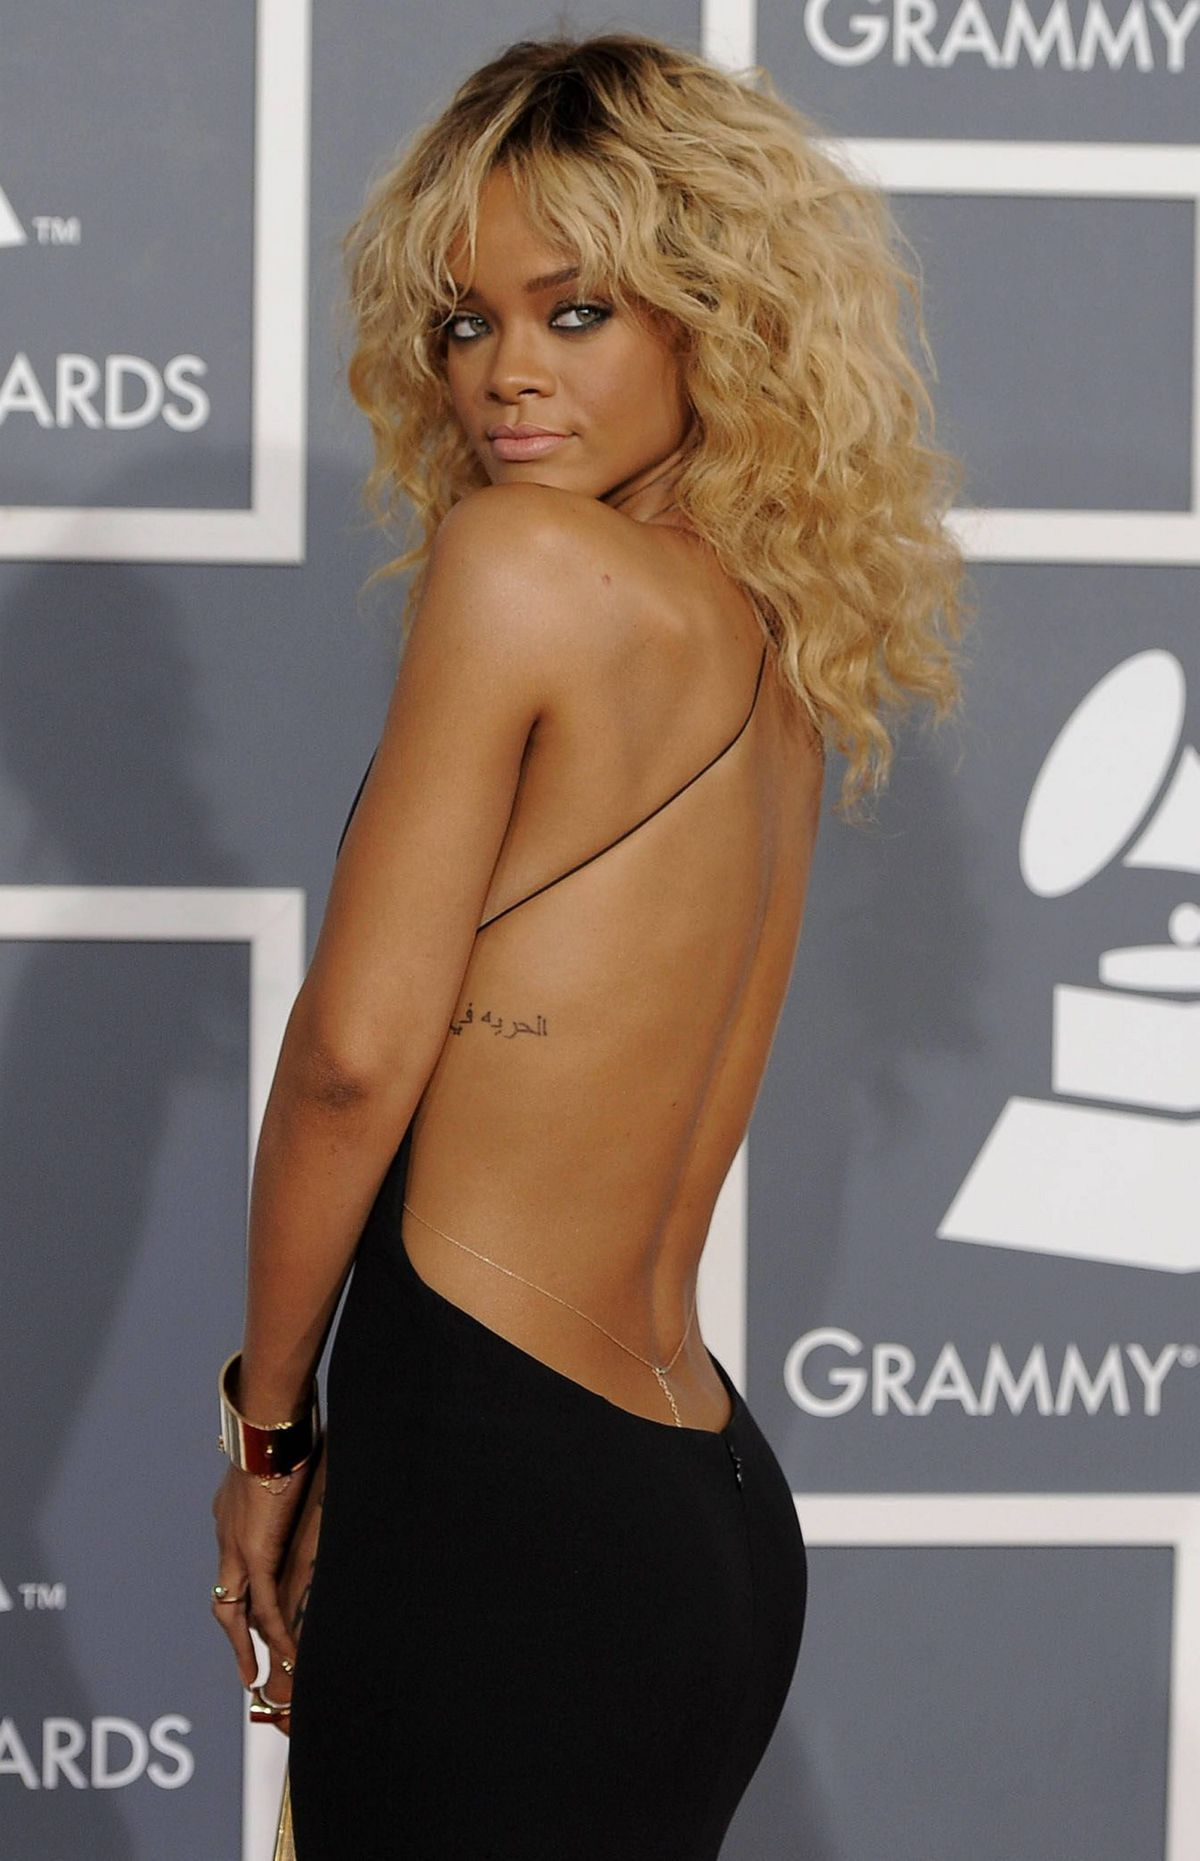 Rihanna arrives at the 54th annual Grammy Awards on Sunday, Feb. 12, 2012 in Los Angeles.